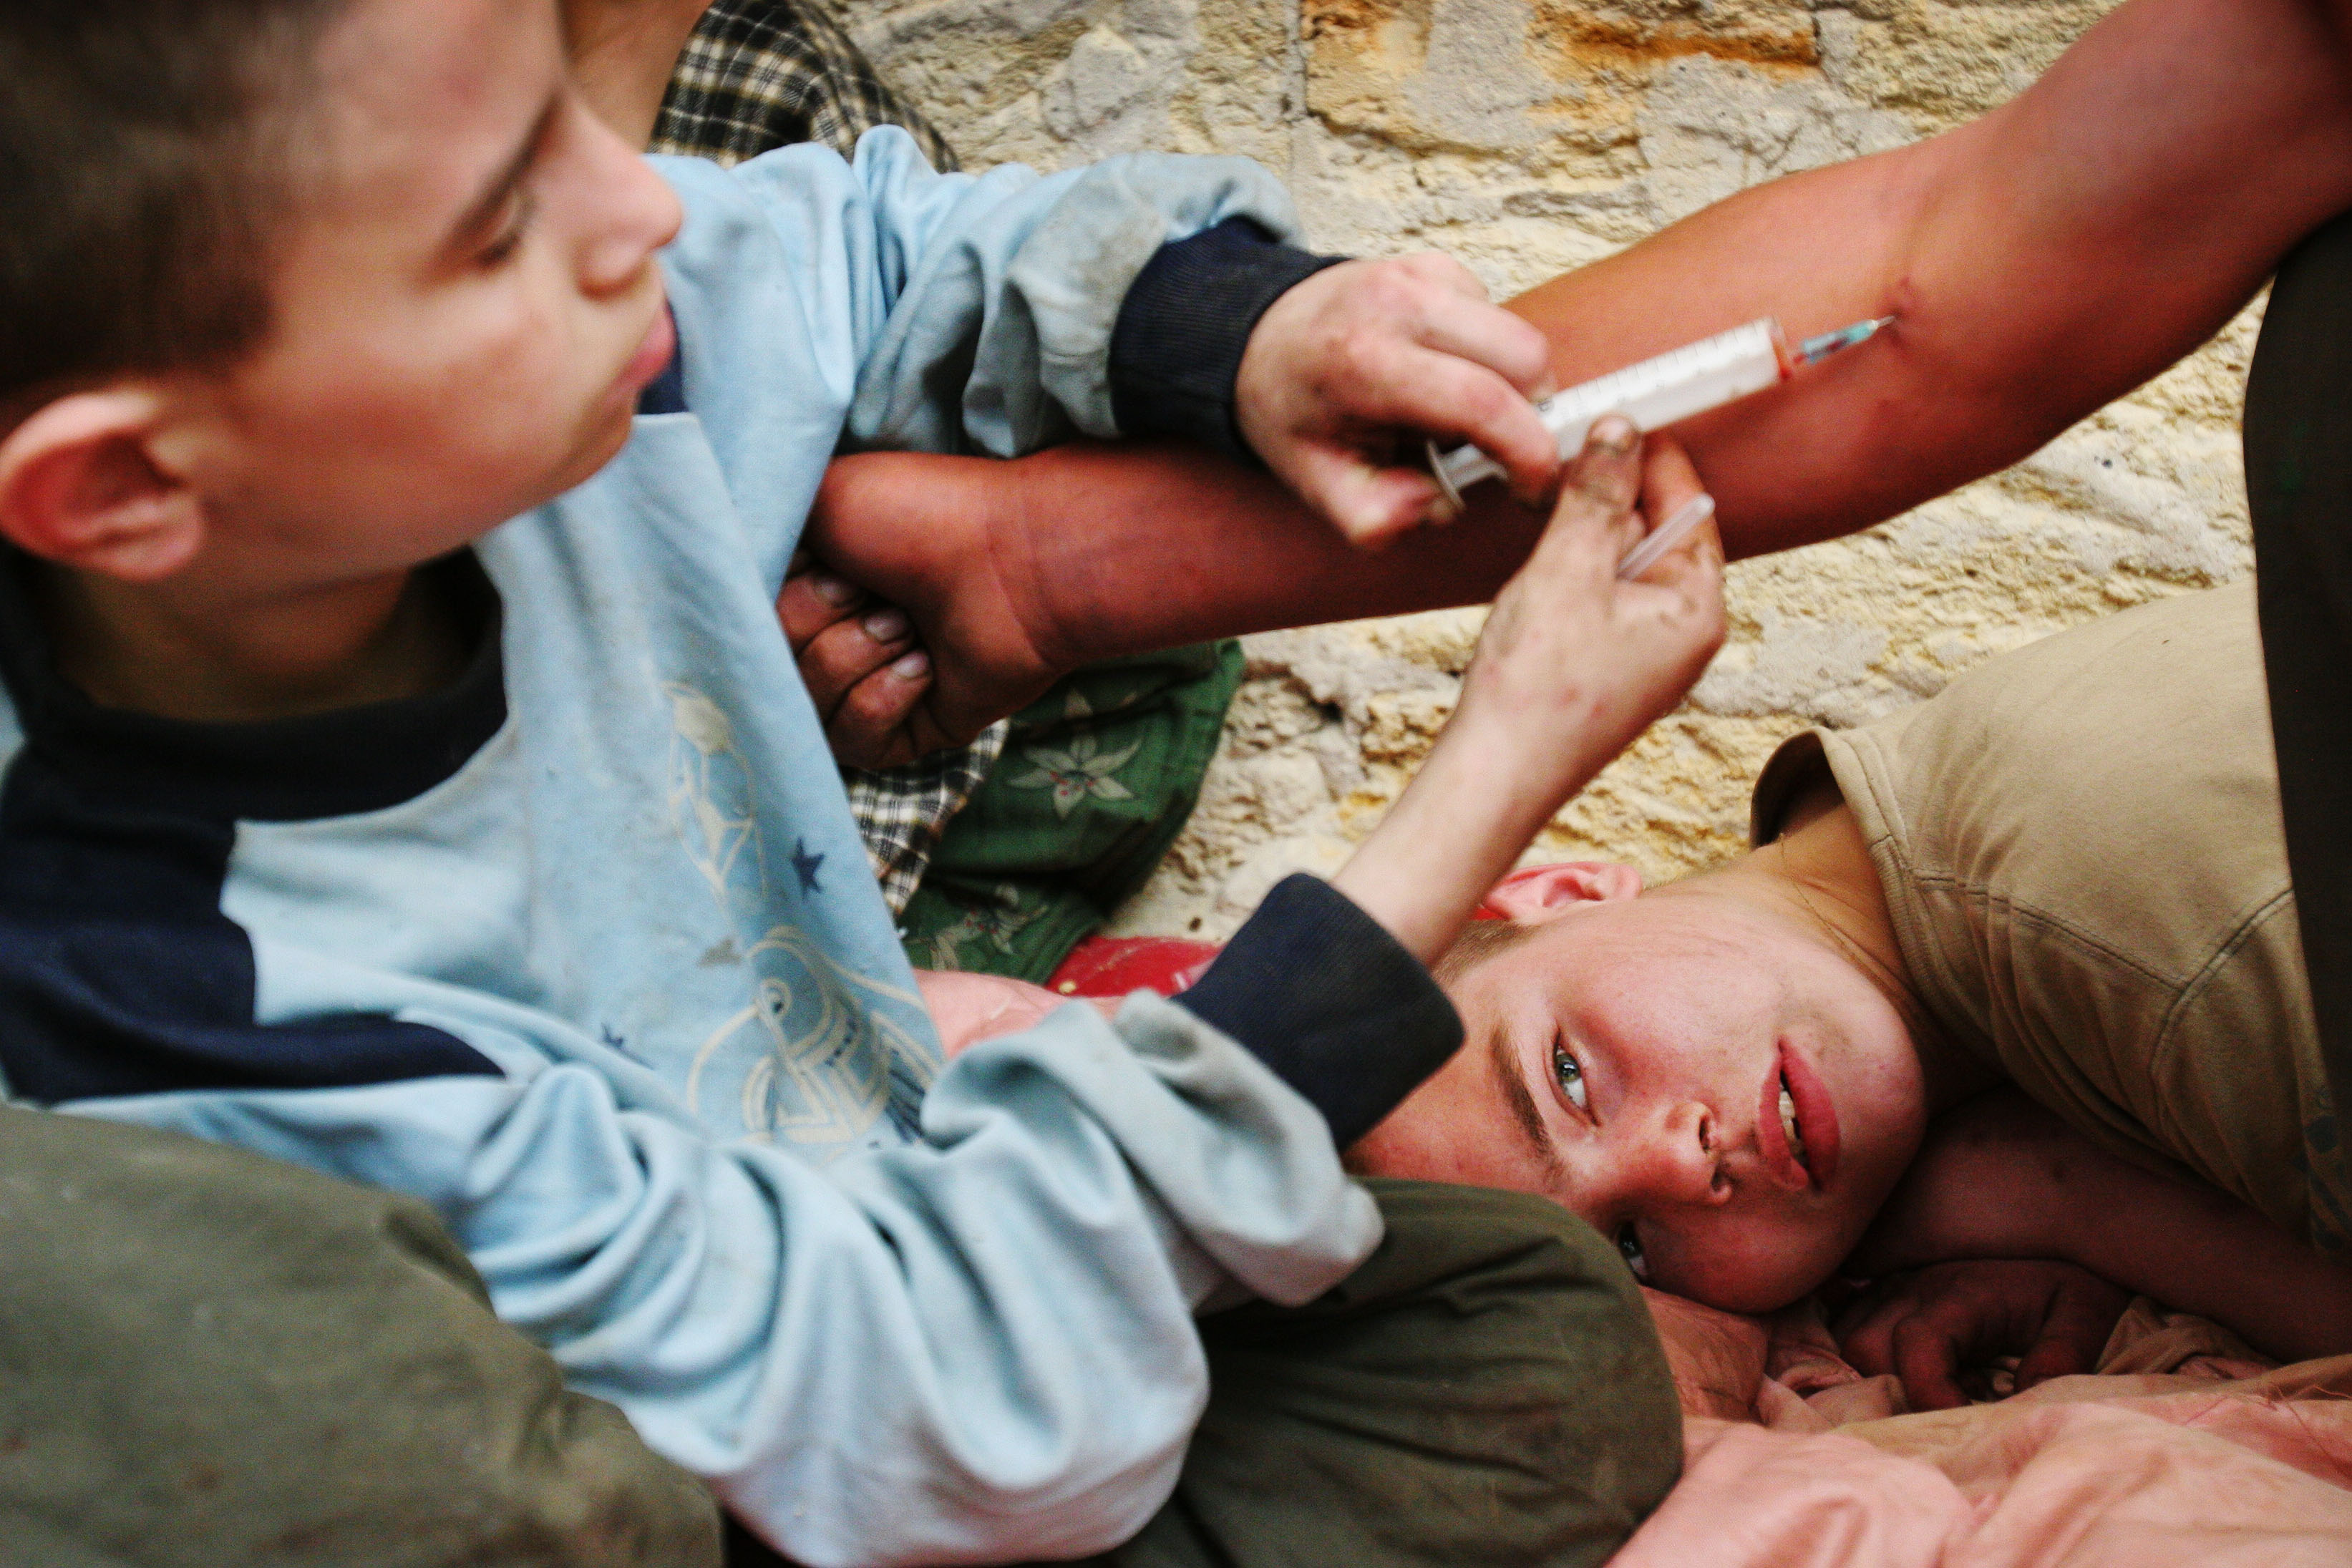 """June 17, 2006 - Denis """"Moldavanchik"""", 12 injects self made drug based on ephedrine known as """"baltushka"""" to his friend while Konstantin Golubenko, 17 looks at it in abandoned house where they live in Odessa, Ukraine on Saturday, June 17, 2006. According to Ukrainian NGO """"The Way Home"""" there are more then 3000 homeless children living in the street of Odessa. Almost all street children use drugs. The last research carried out by """"The Way Home"""" shows that practically all street children have STDs and many of them are HIV positive."""